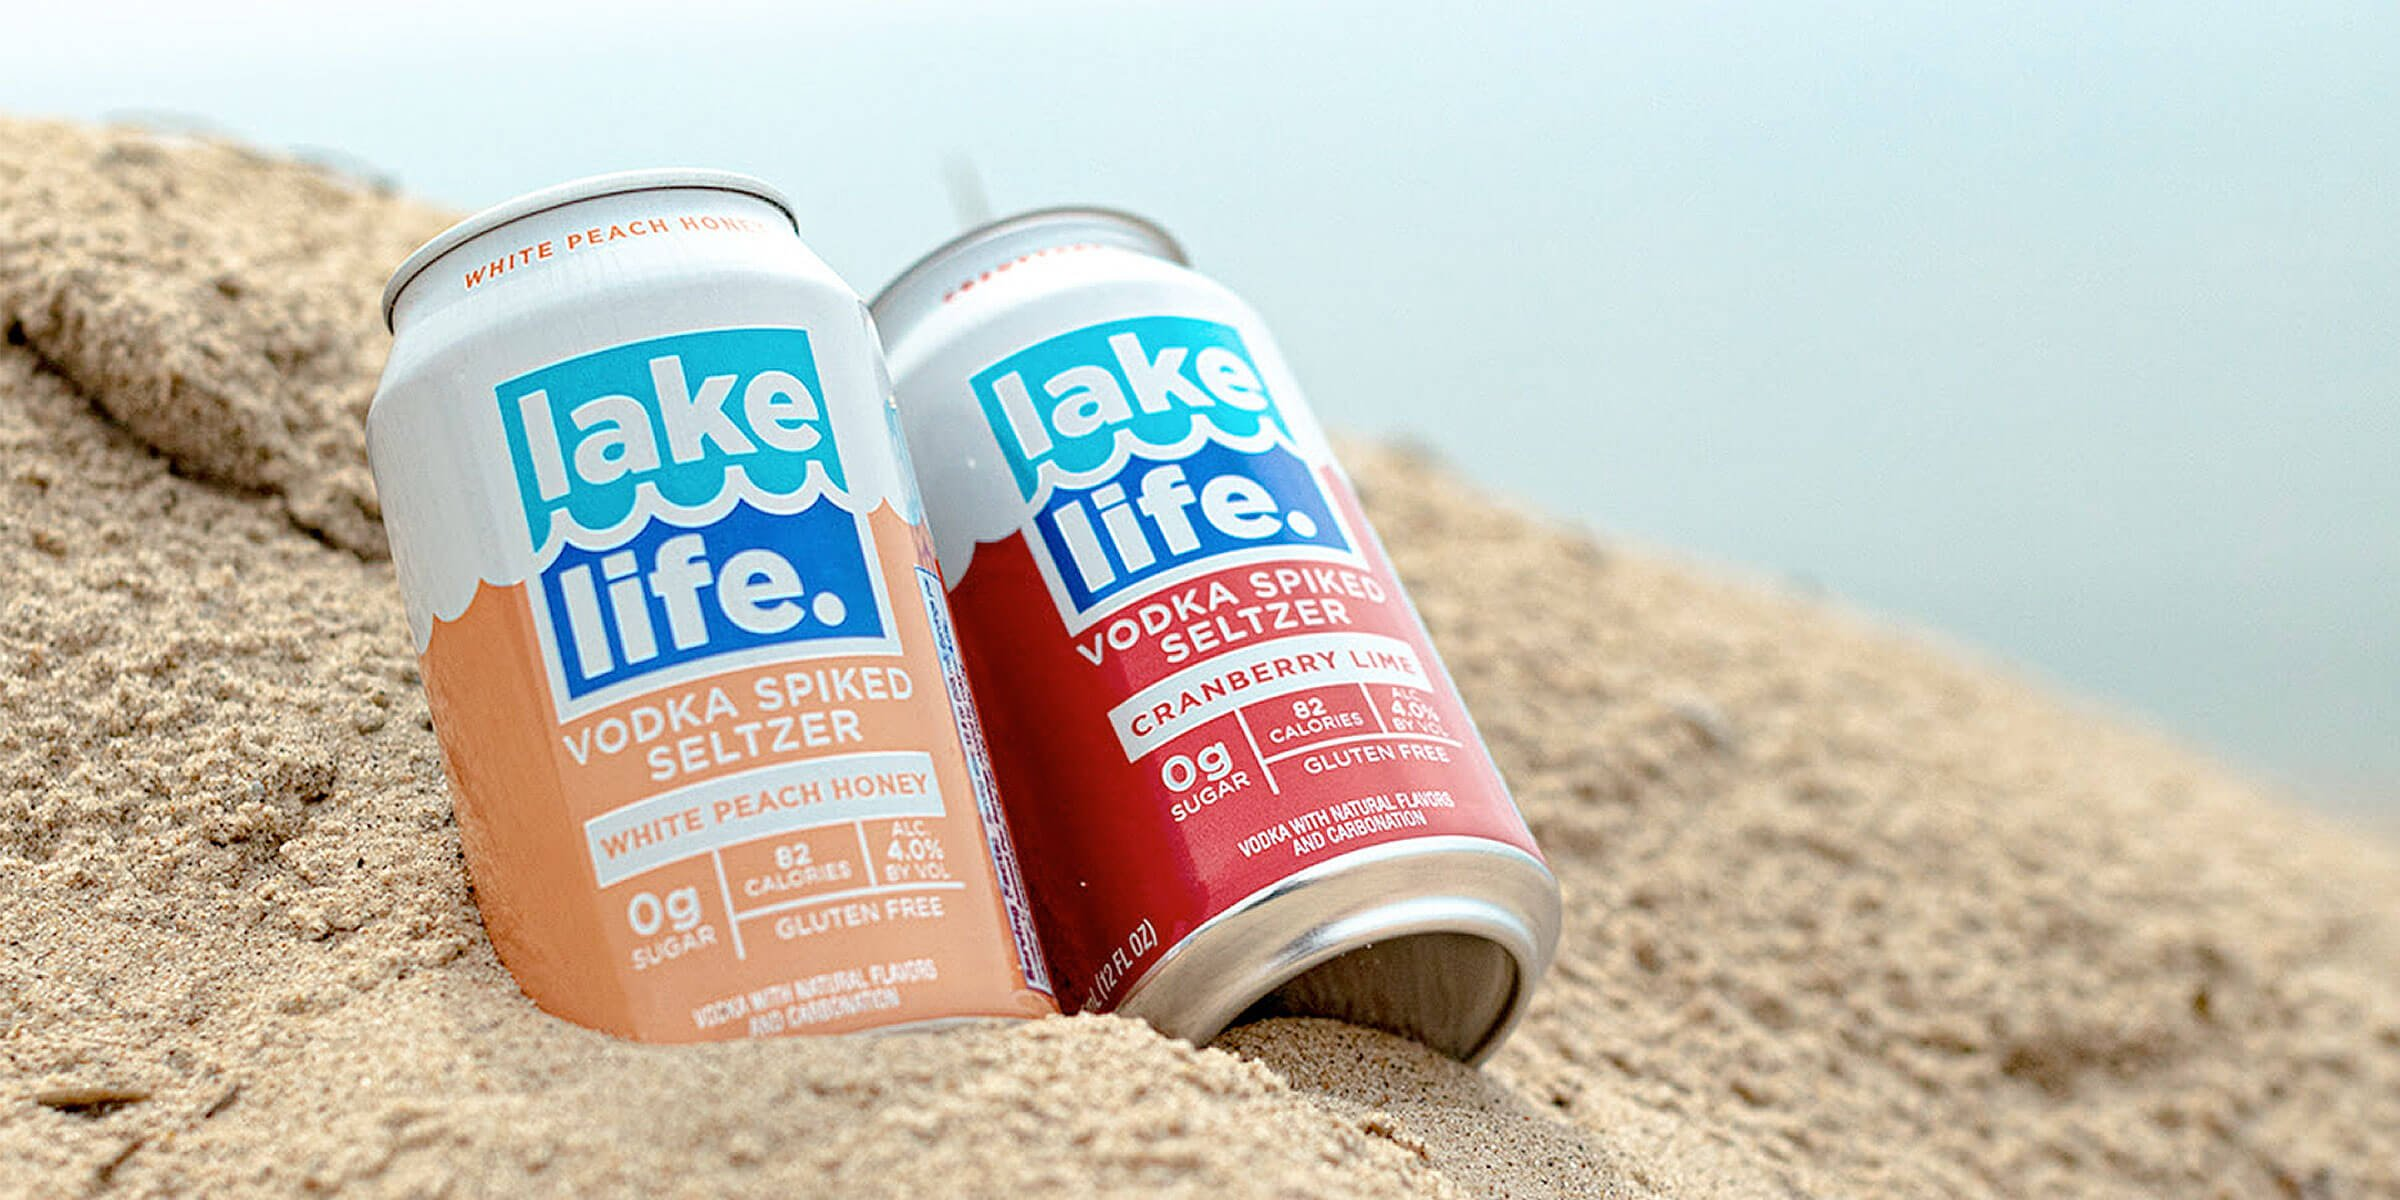 Michigan-based New Holland Brewing's sister distillery New Holland Spirits is launching a pair of Lake Life vodka-spiked hard seltzers statewide.